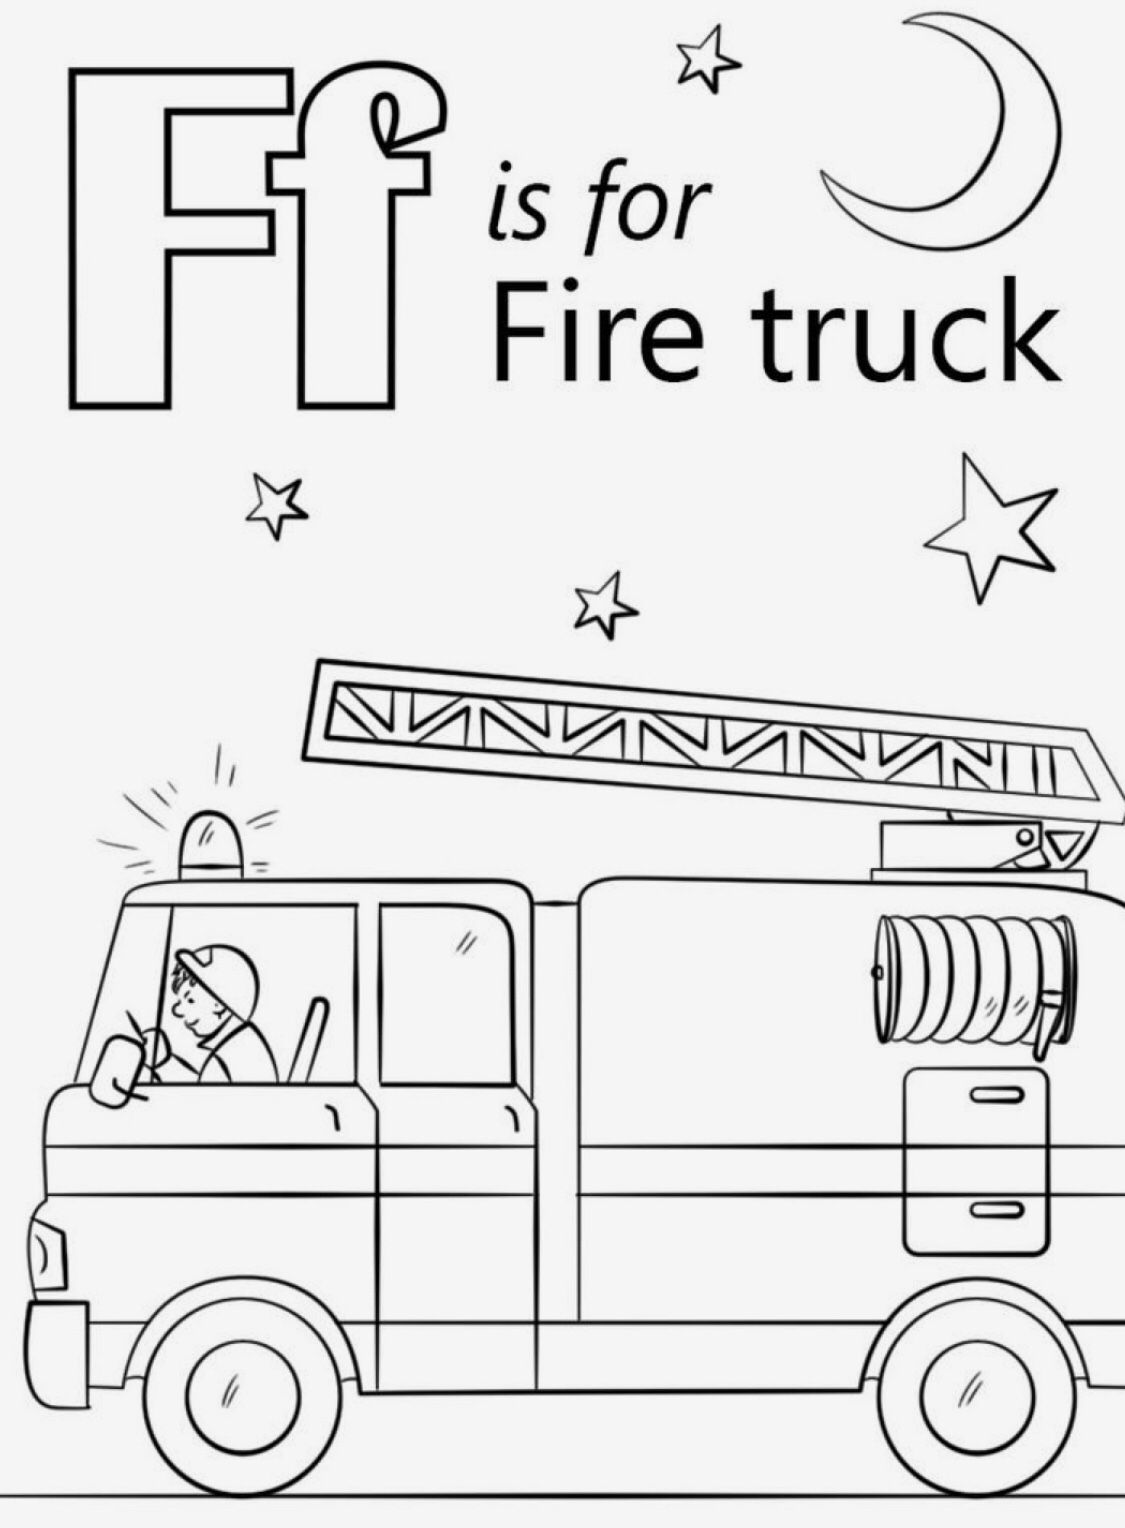 Pin By Kristie Calley On Letters Truck Coloring Pages Abc Coloring Pages Alphabet Coloring Pages [ 1528 x 1125 Pixel ]